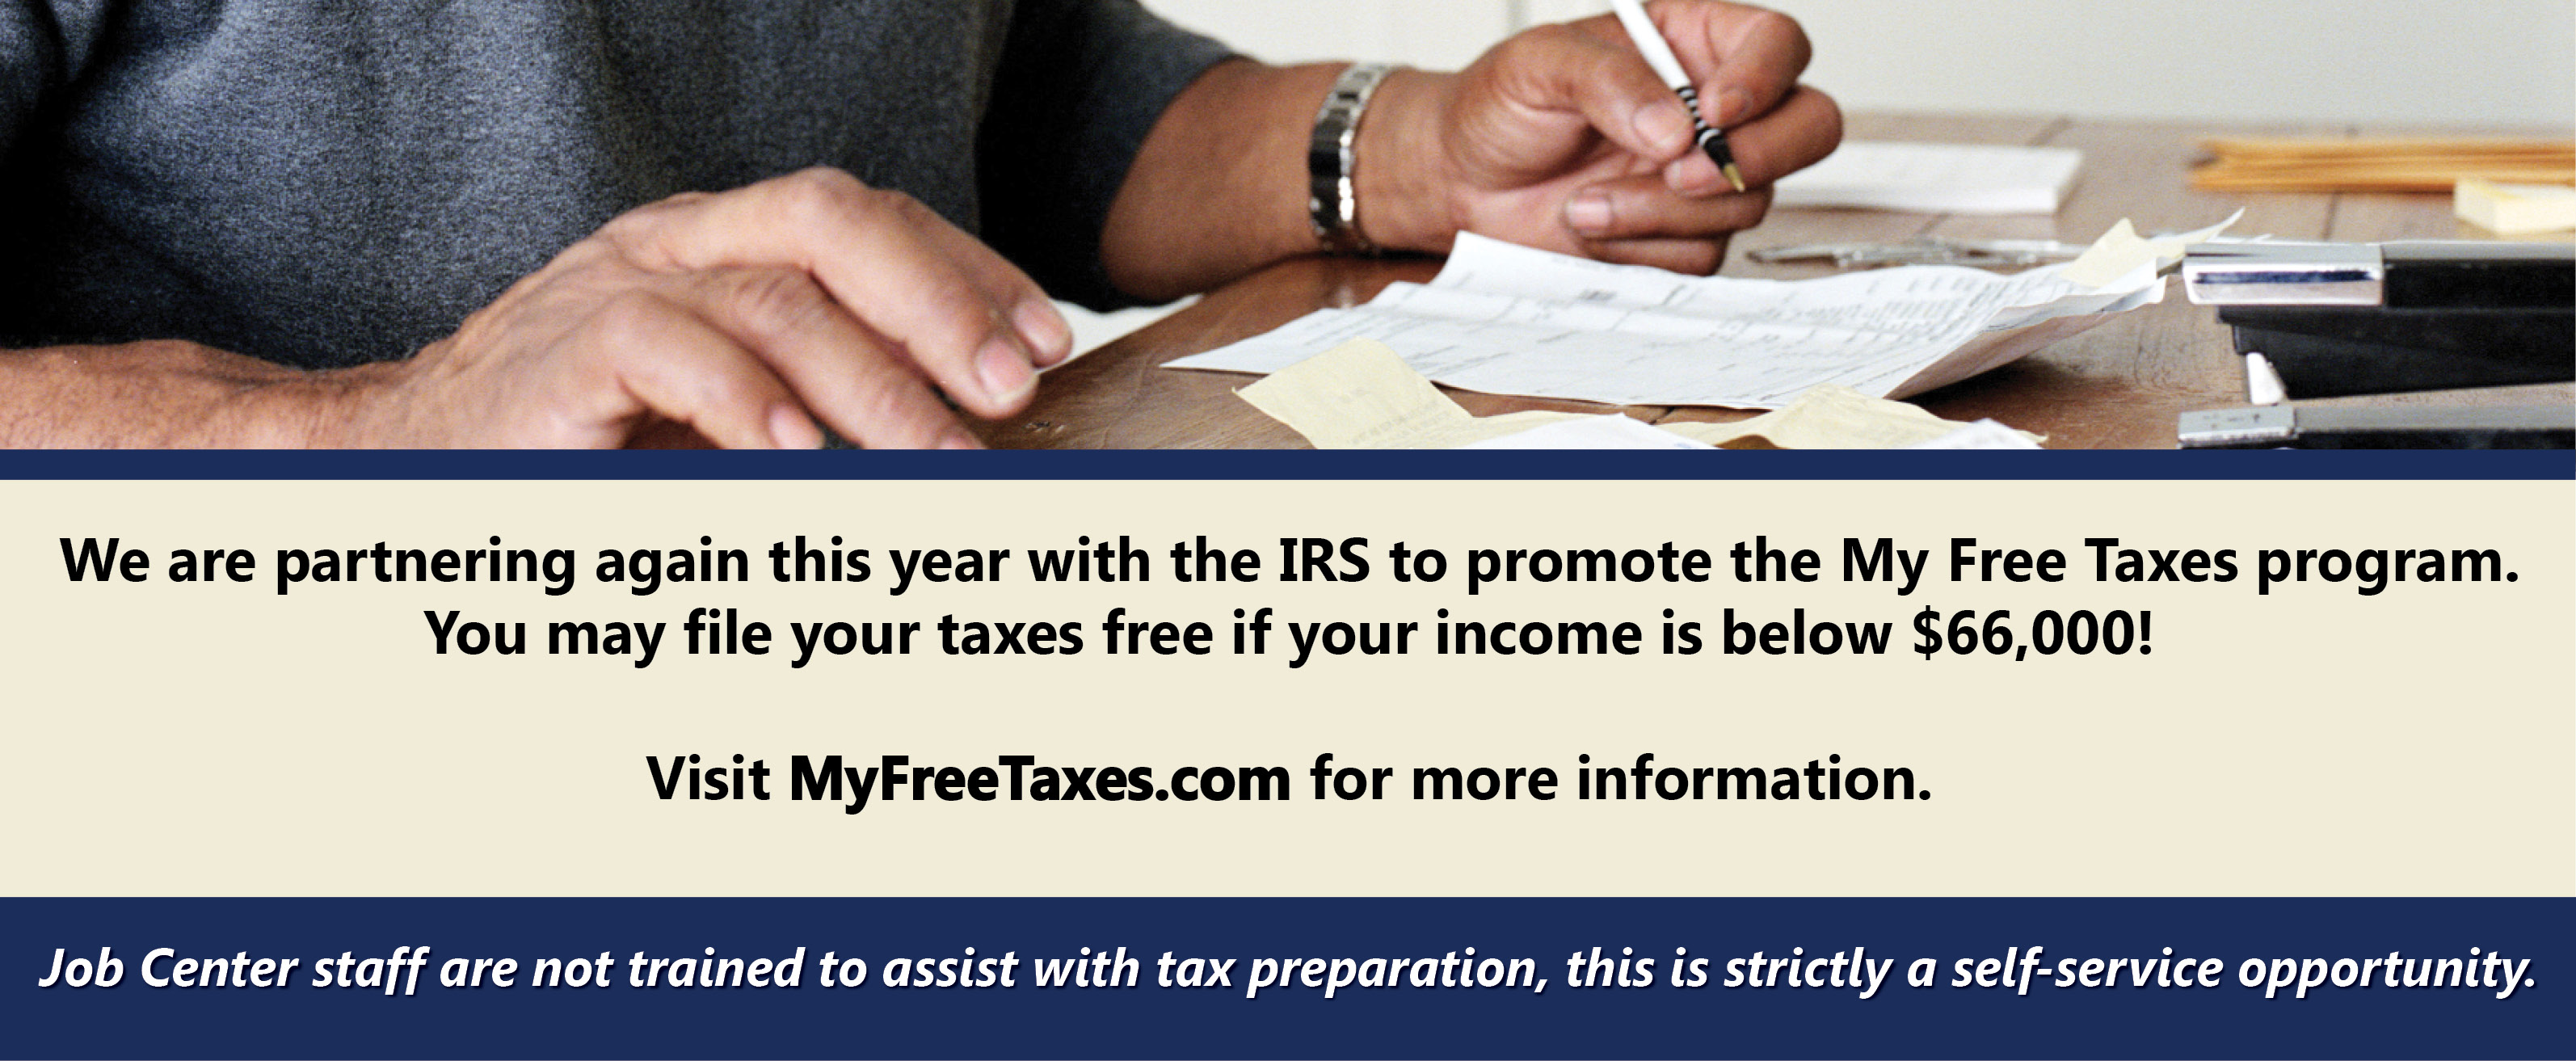 Free tax filing at Myfreetaxes.com